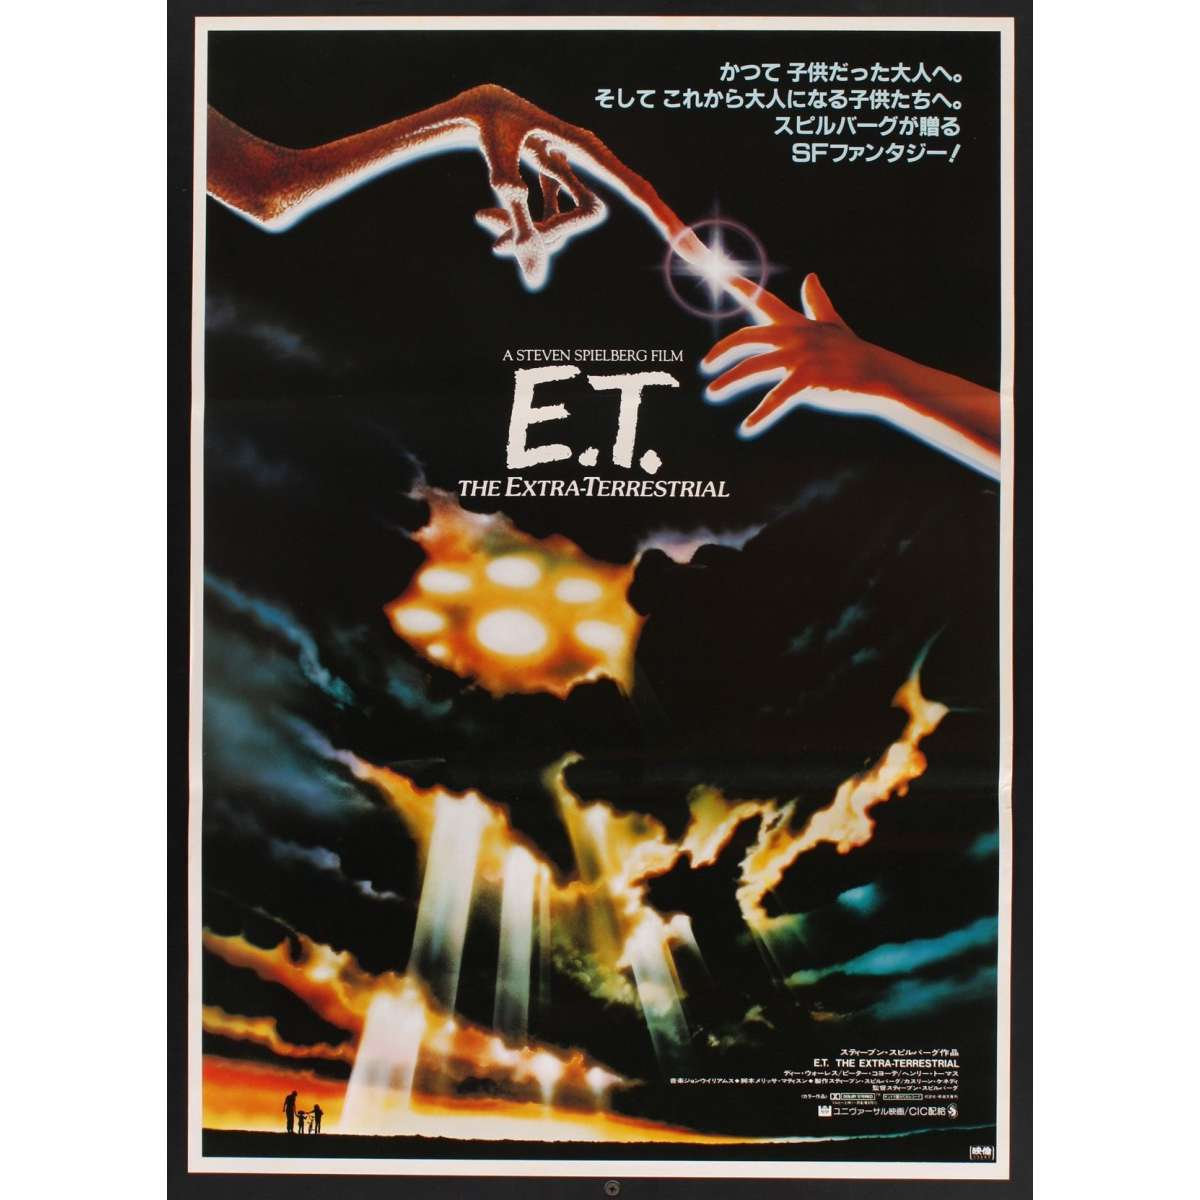 E t vintage japanese movie poster 39 82 steven spielberg at mauvais genres com for Poster et affiche